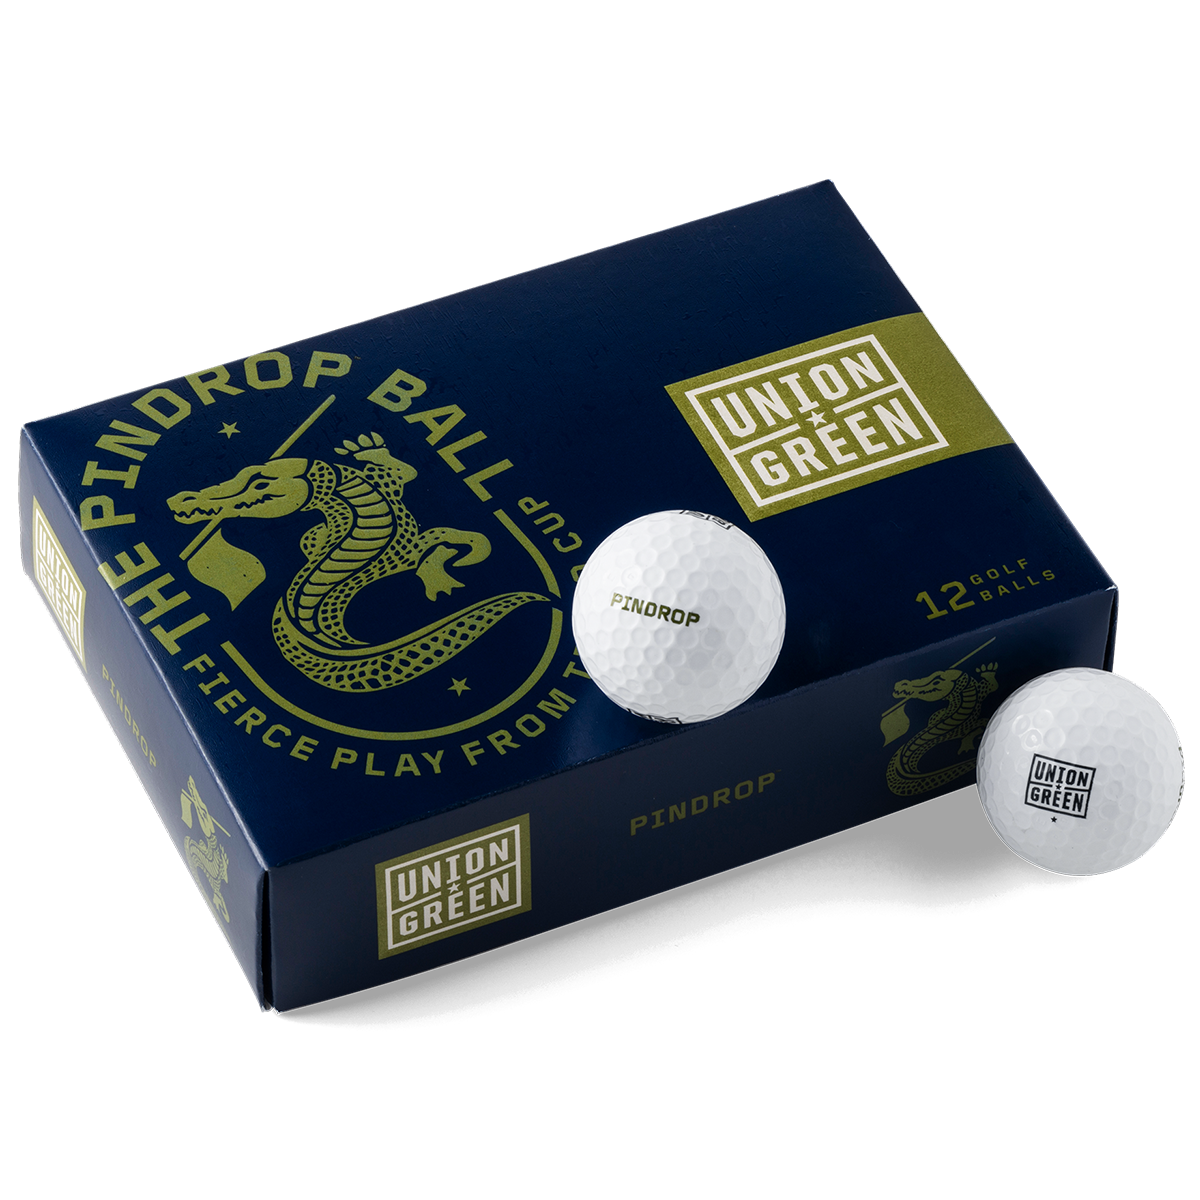 Union Green Pindrop Golf Ball